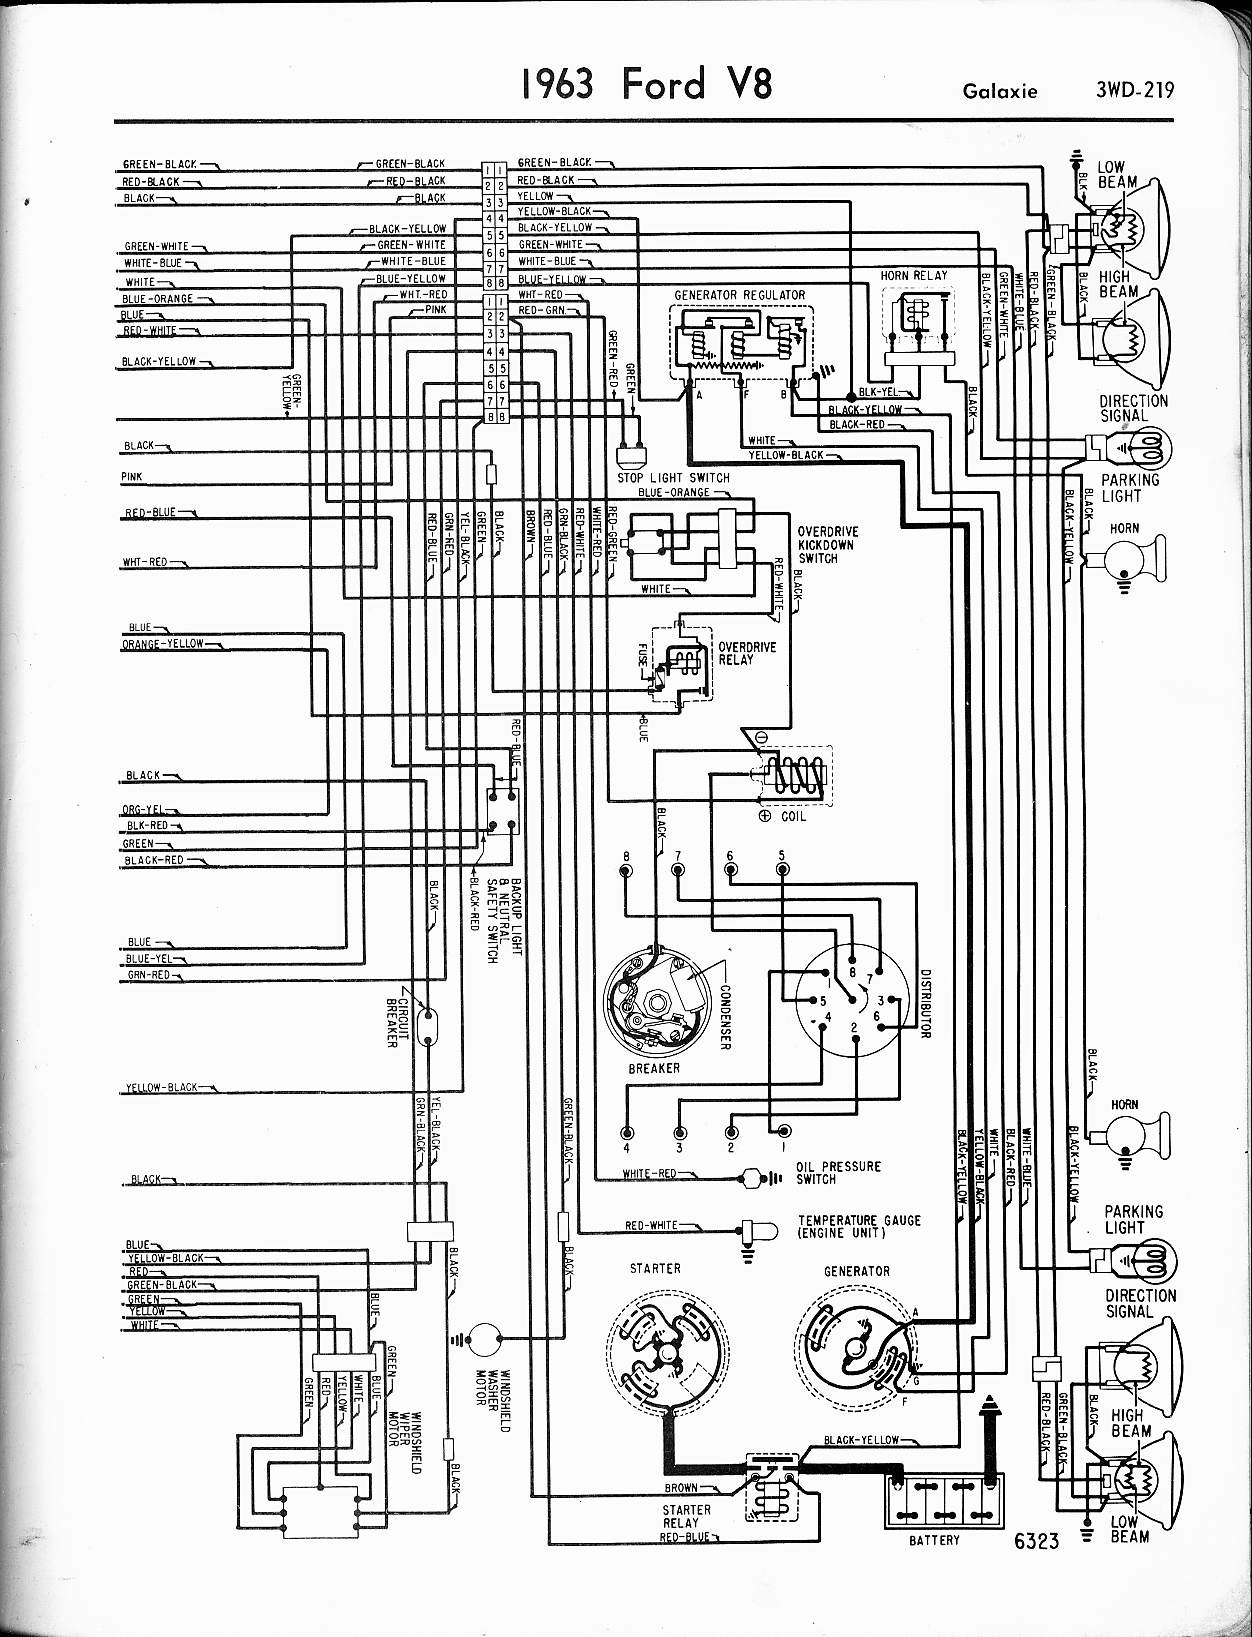 65 Galaxie Wiring Diagram on 1963 Ford Galaxie Wiring Diagram